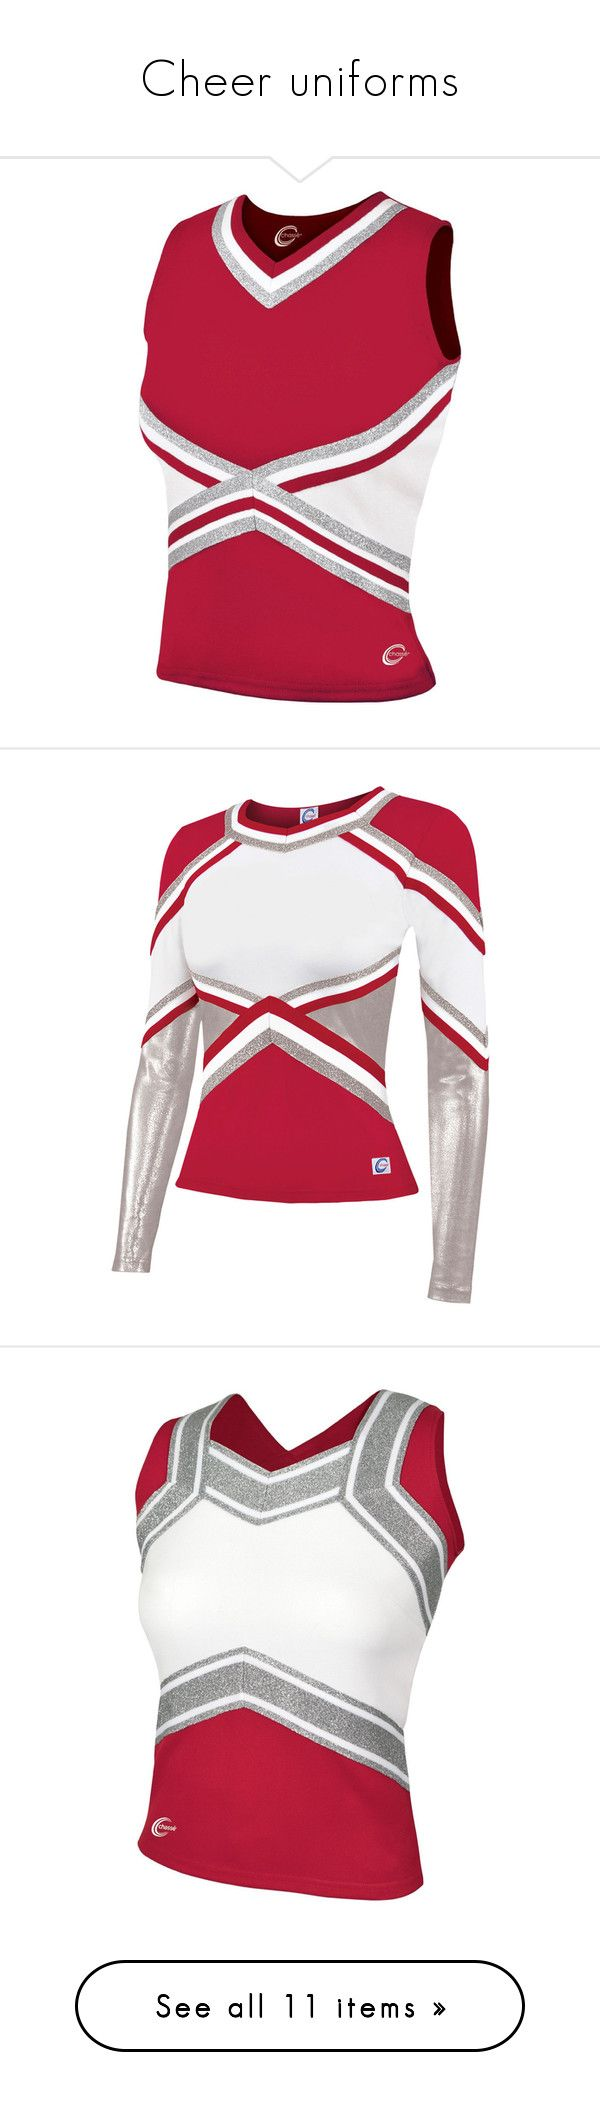 """""""Cheer uniforms"""" by obeyxxlove1372 ❤ liked on Polyvore featuring activewear, cheer, cheerleader, sport, chassè, skirts, sports, sport skirts, panel skirt and sports skirts"""